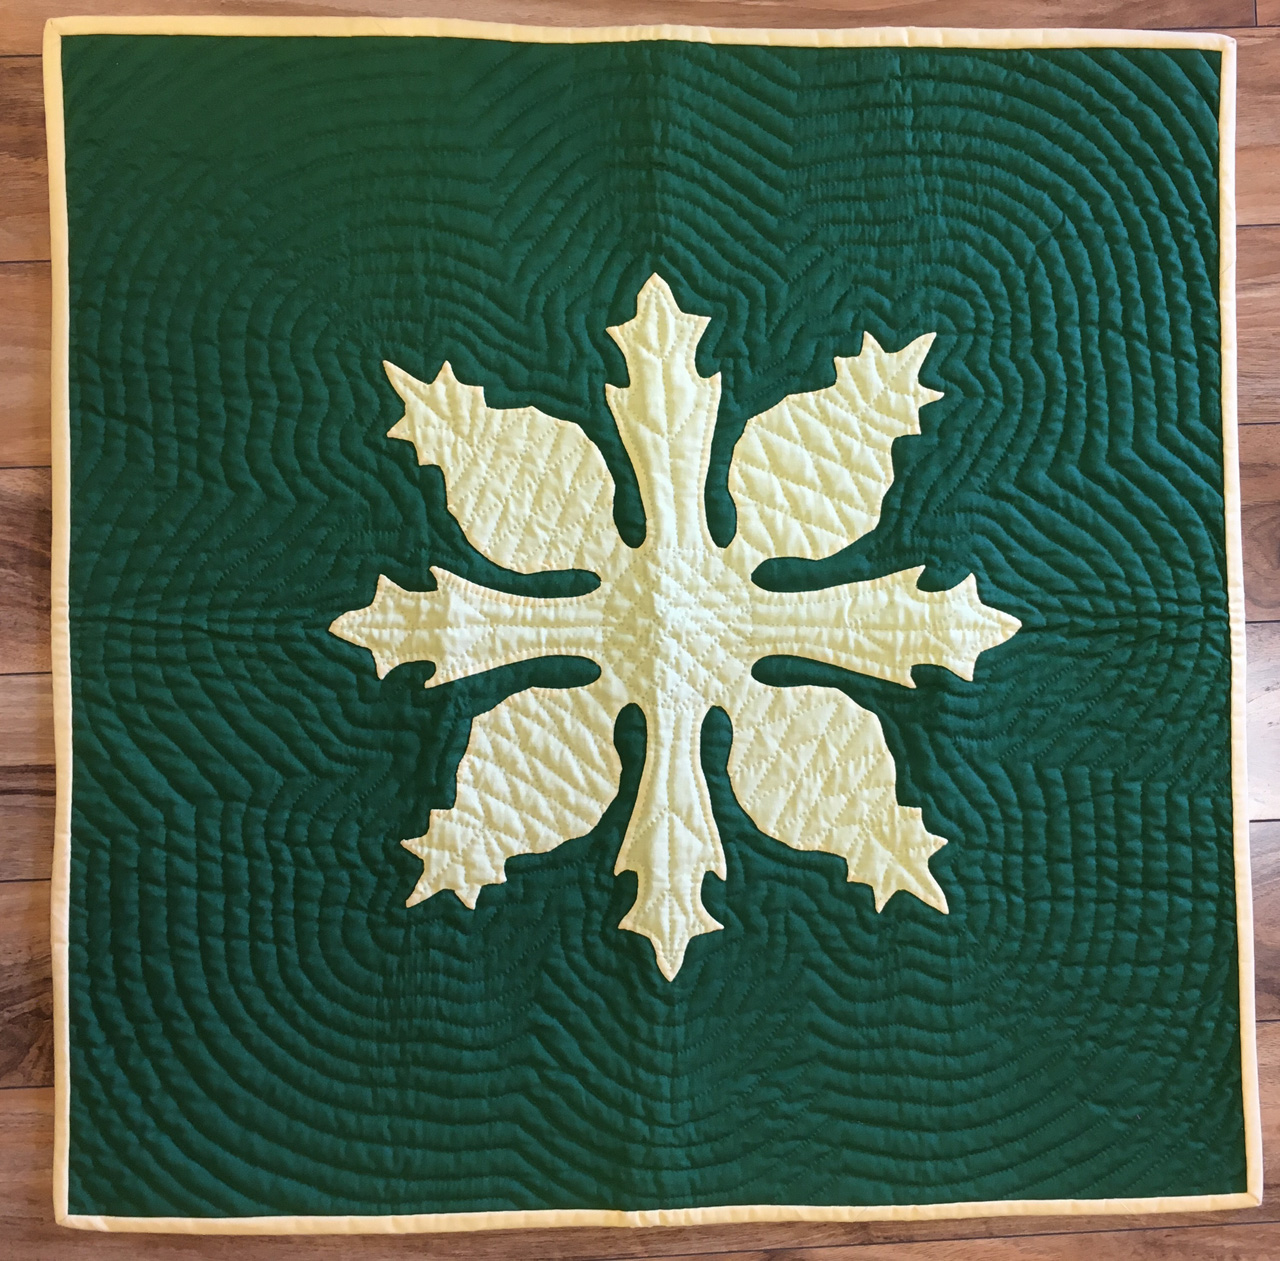 Pineapple Quilted Panel in Green and Pale Yellow by Noreen Tretick